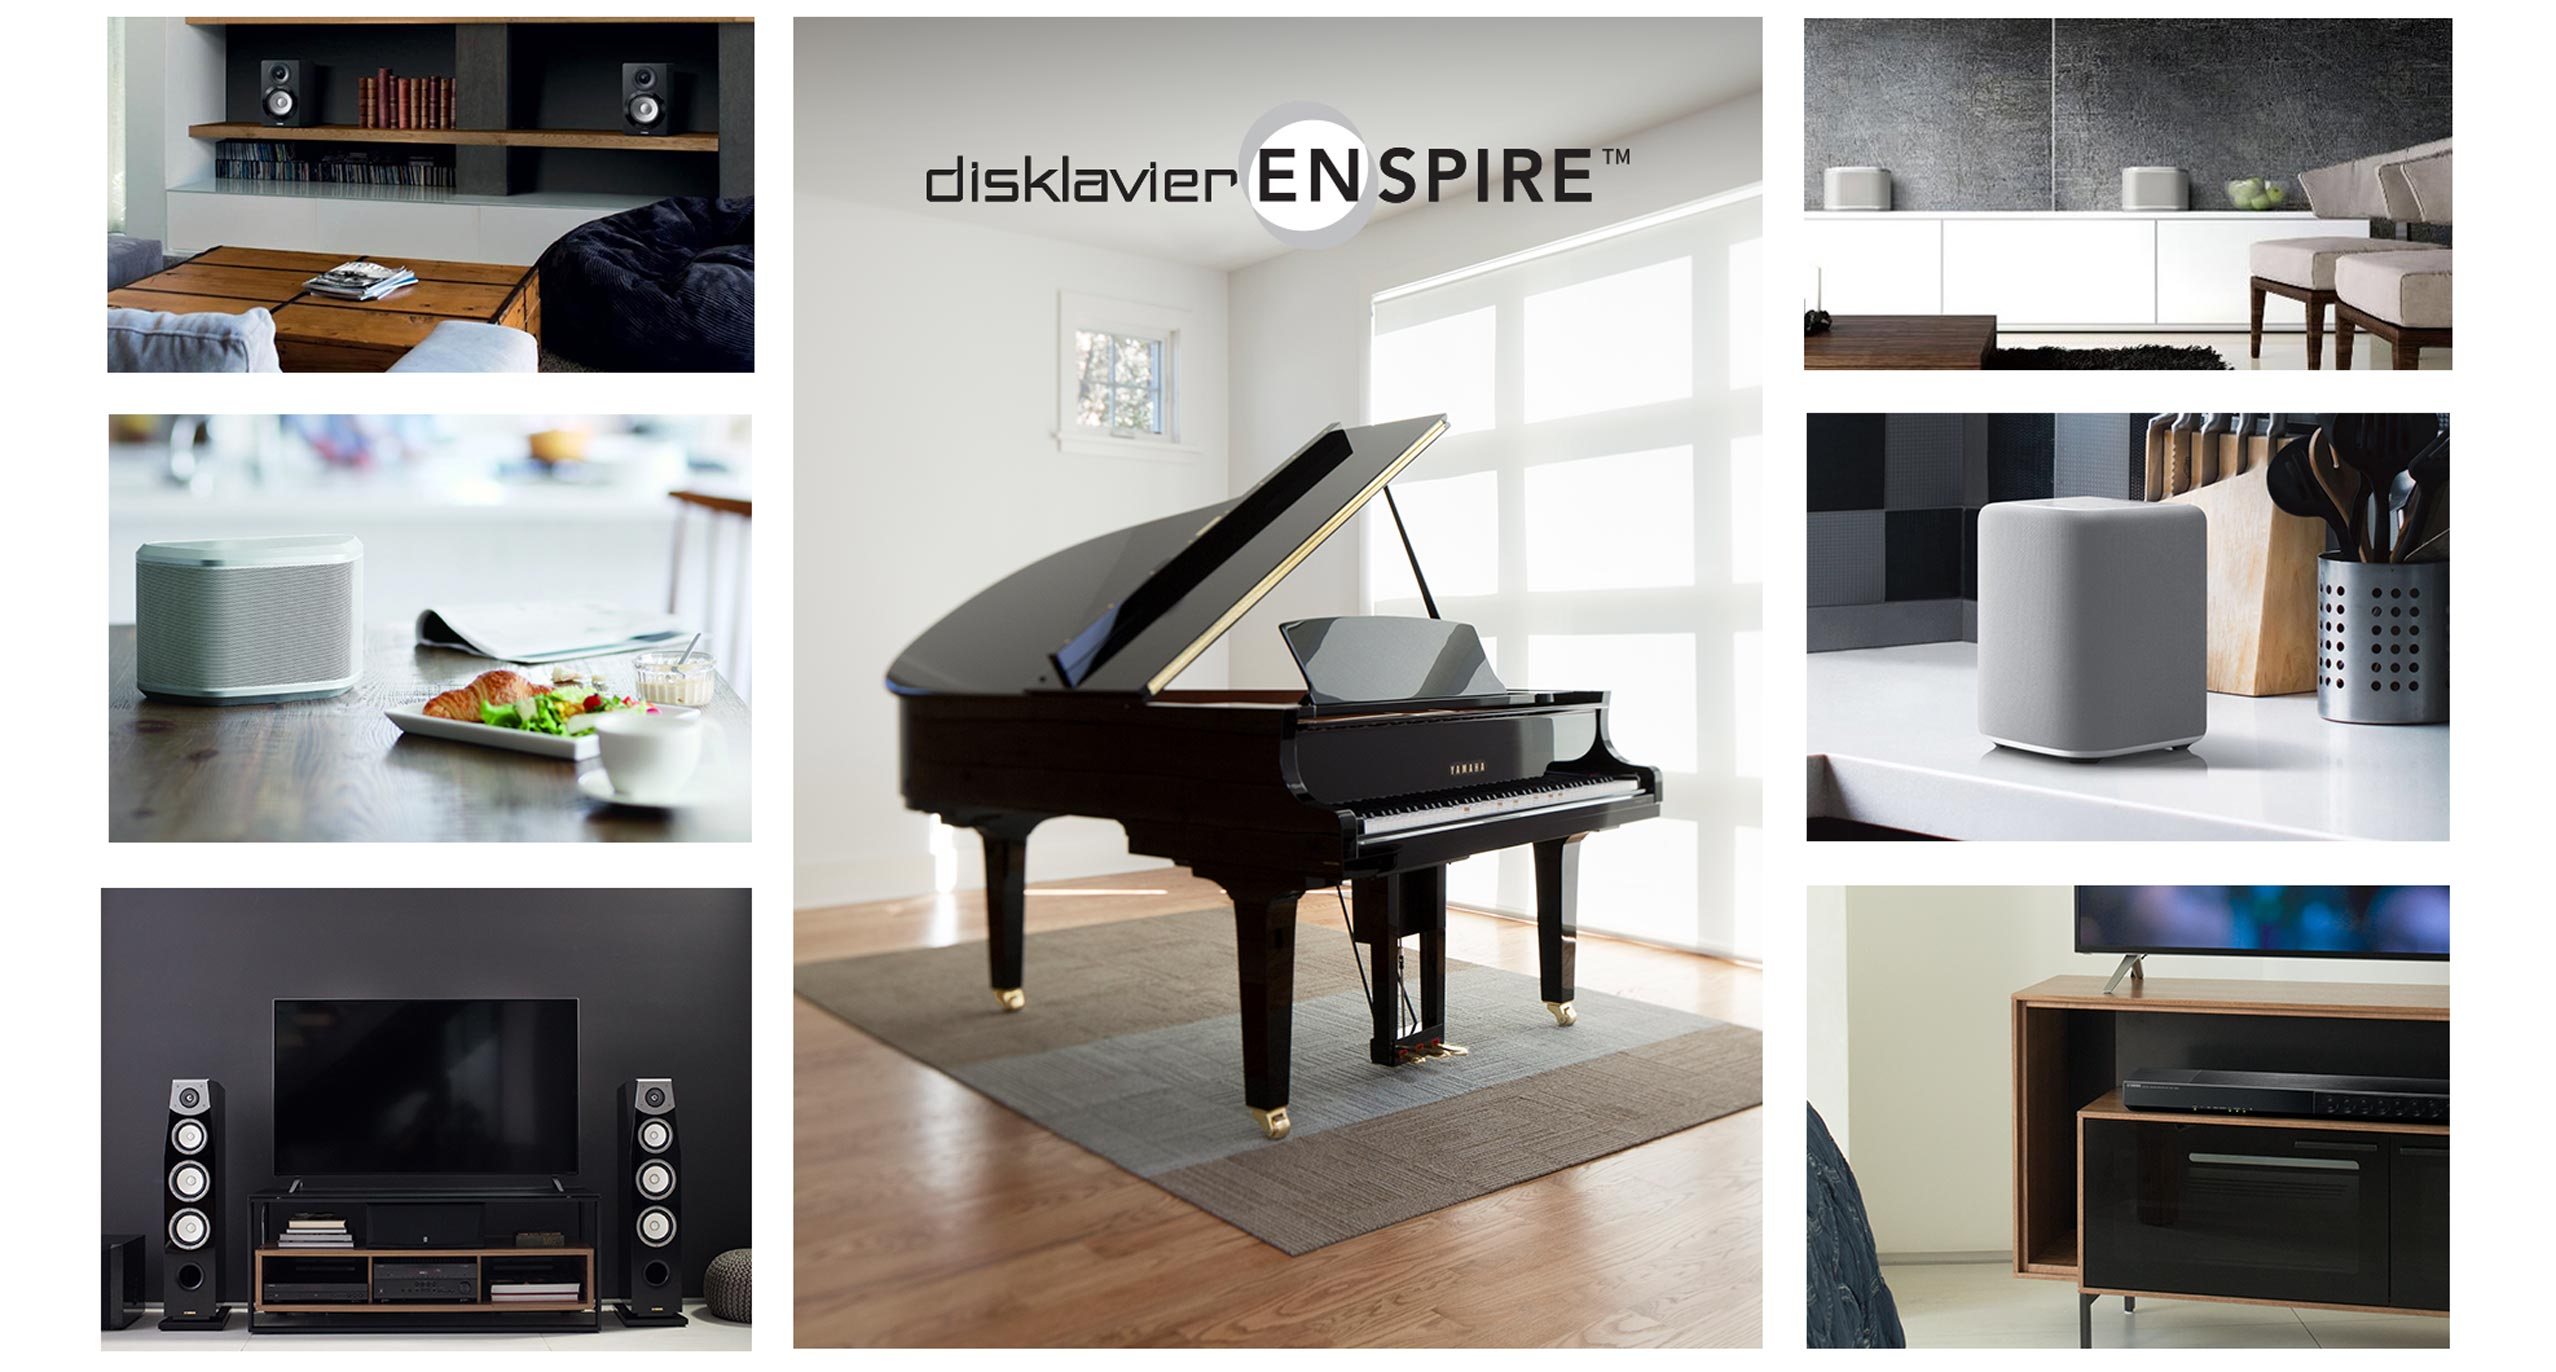 Enspire MusicCast Image Collage